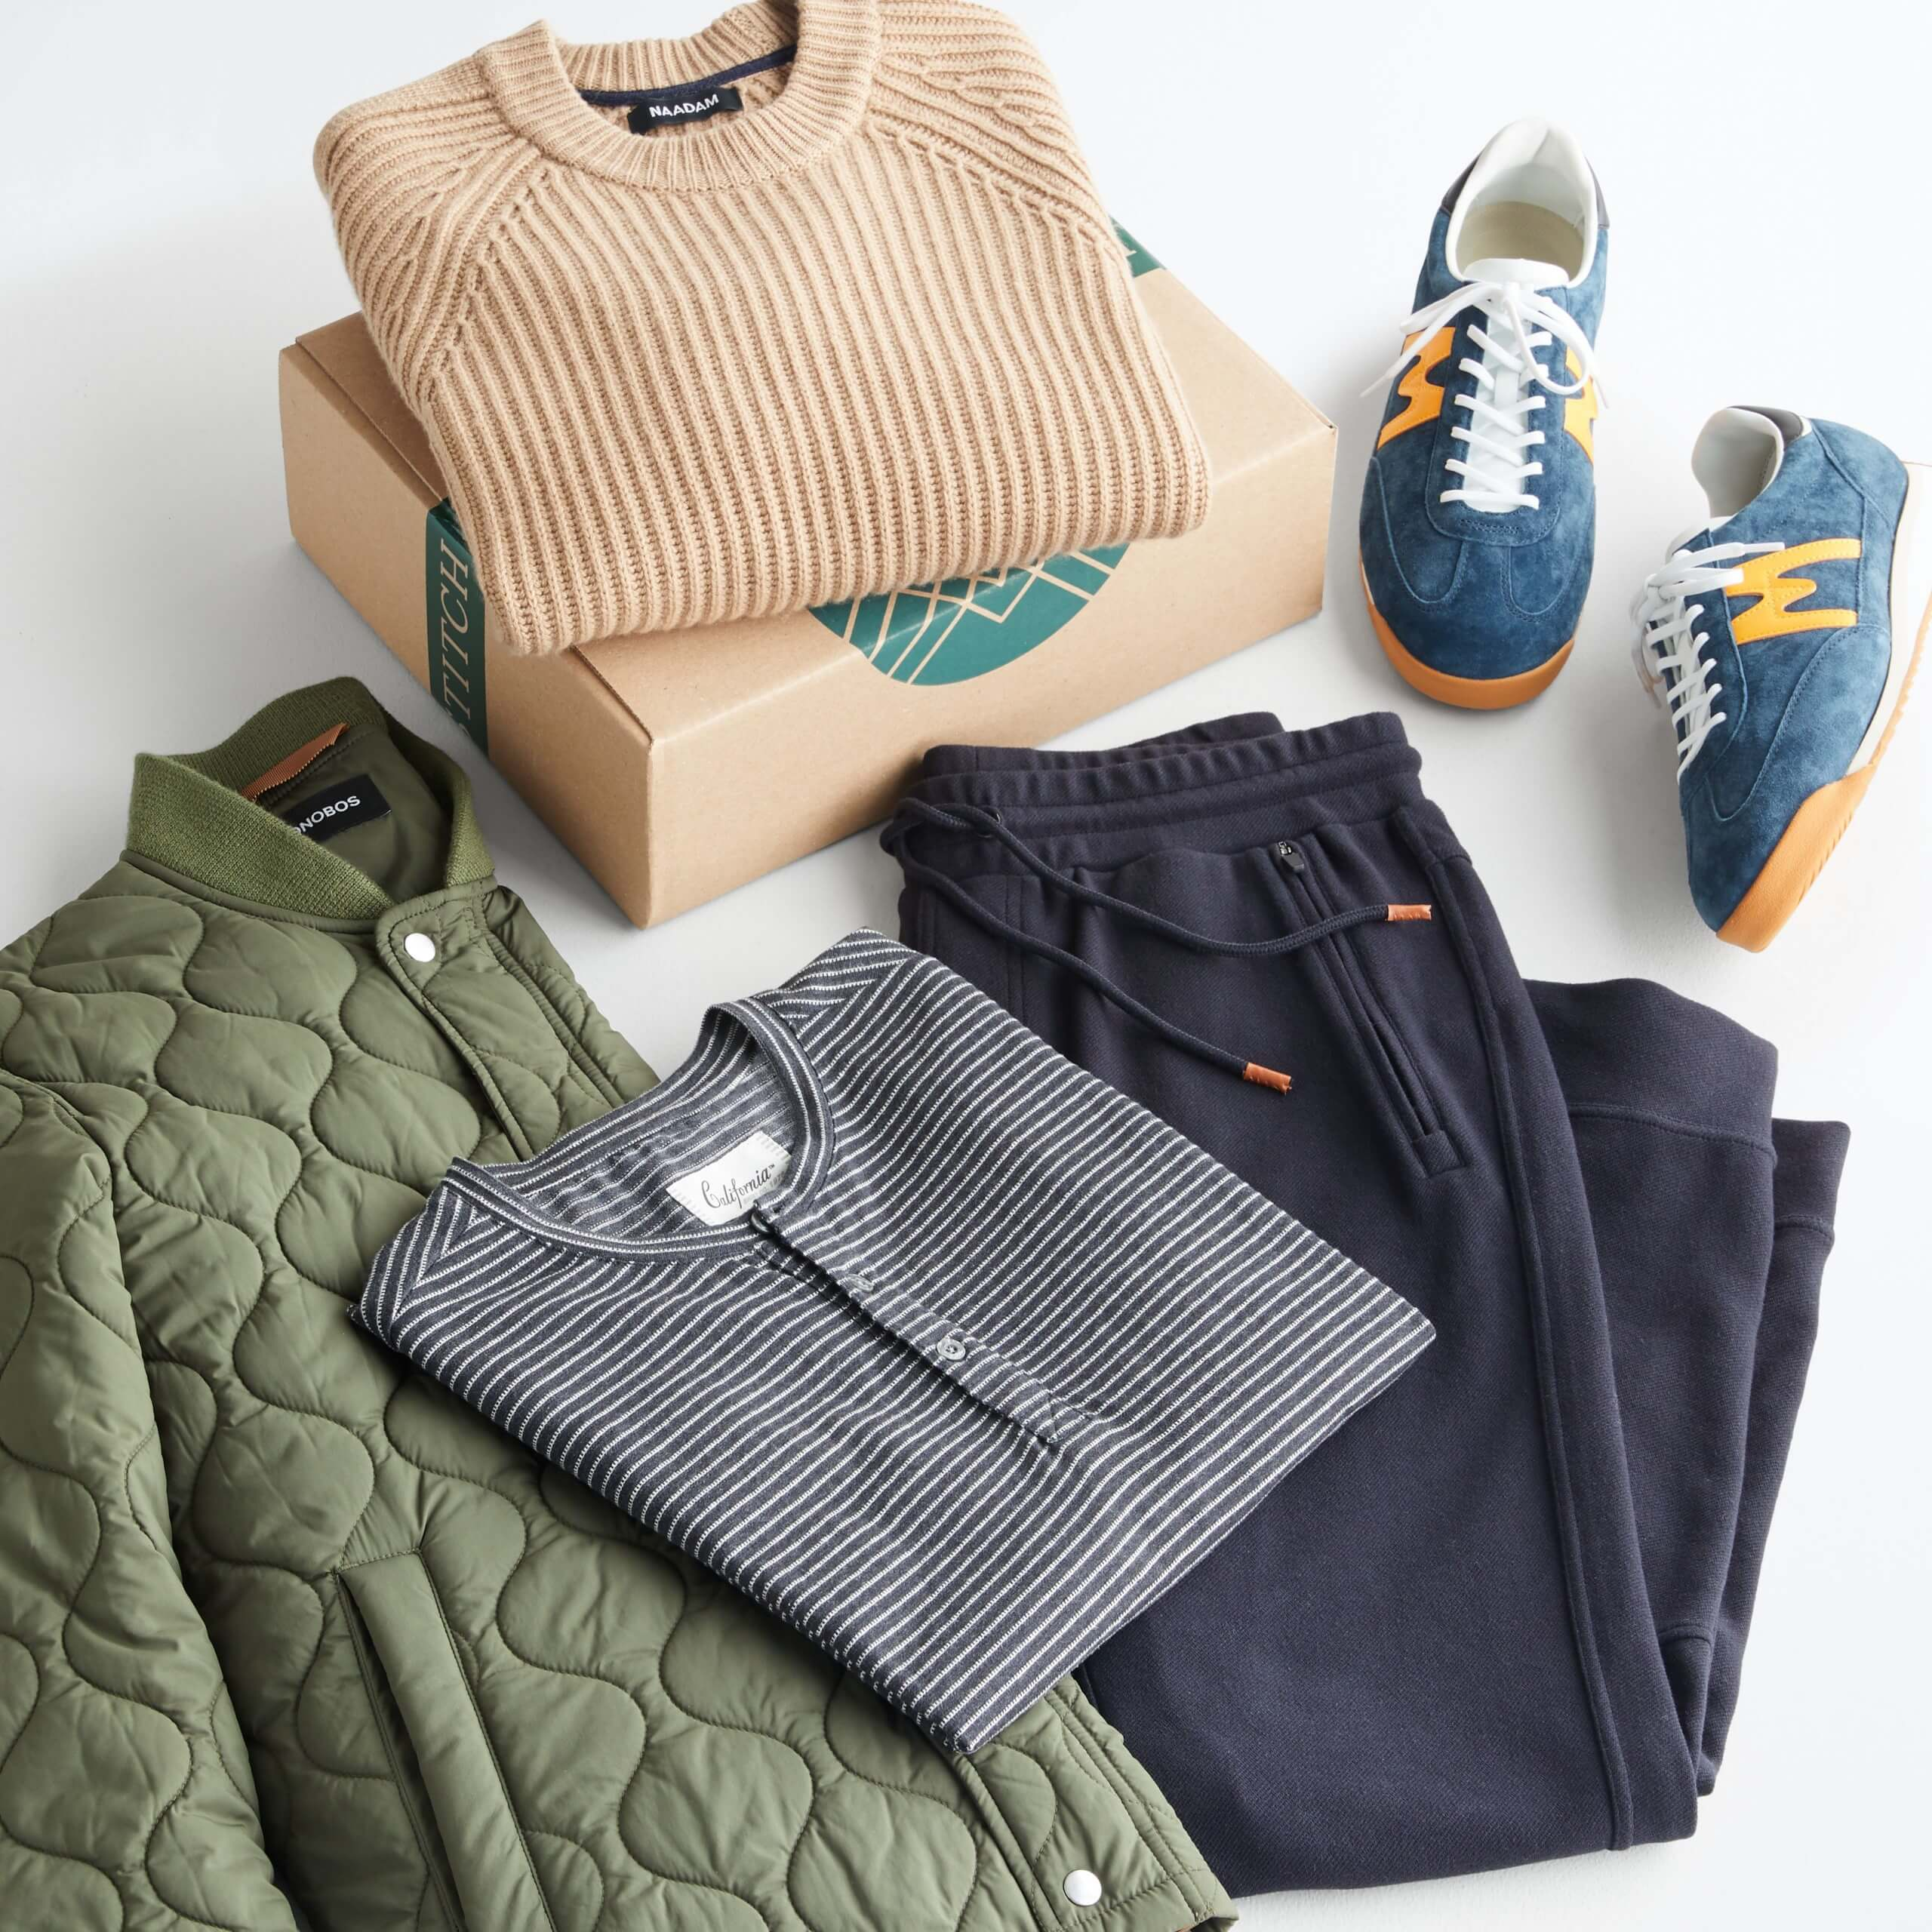 Stitch Fix Men's outfit laydown featuring camel crewneck sweater folded on Stitch Fix next to blue retro suede sneakers, blue joggers, striped henley and olive quilted bomber jacket.